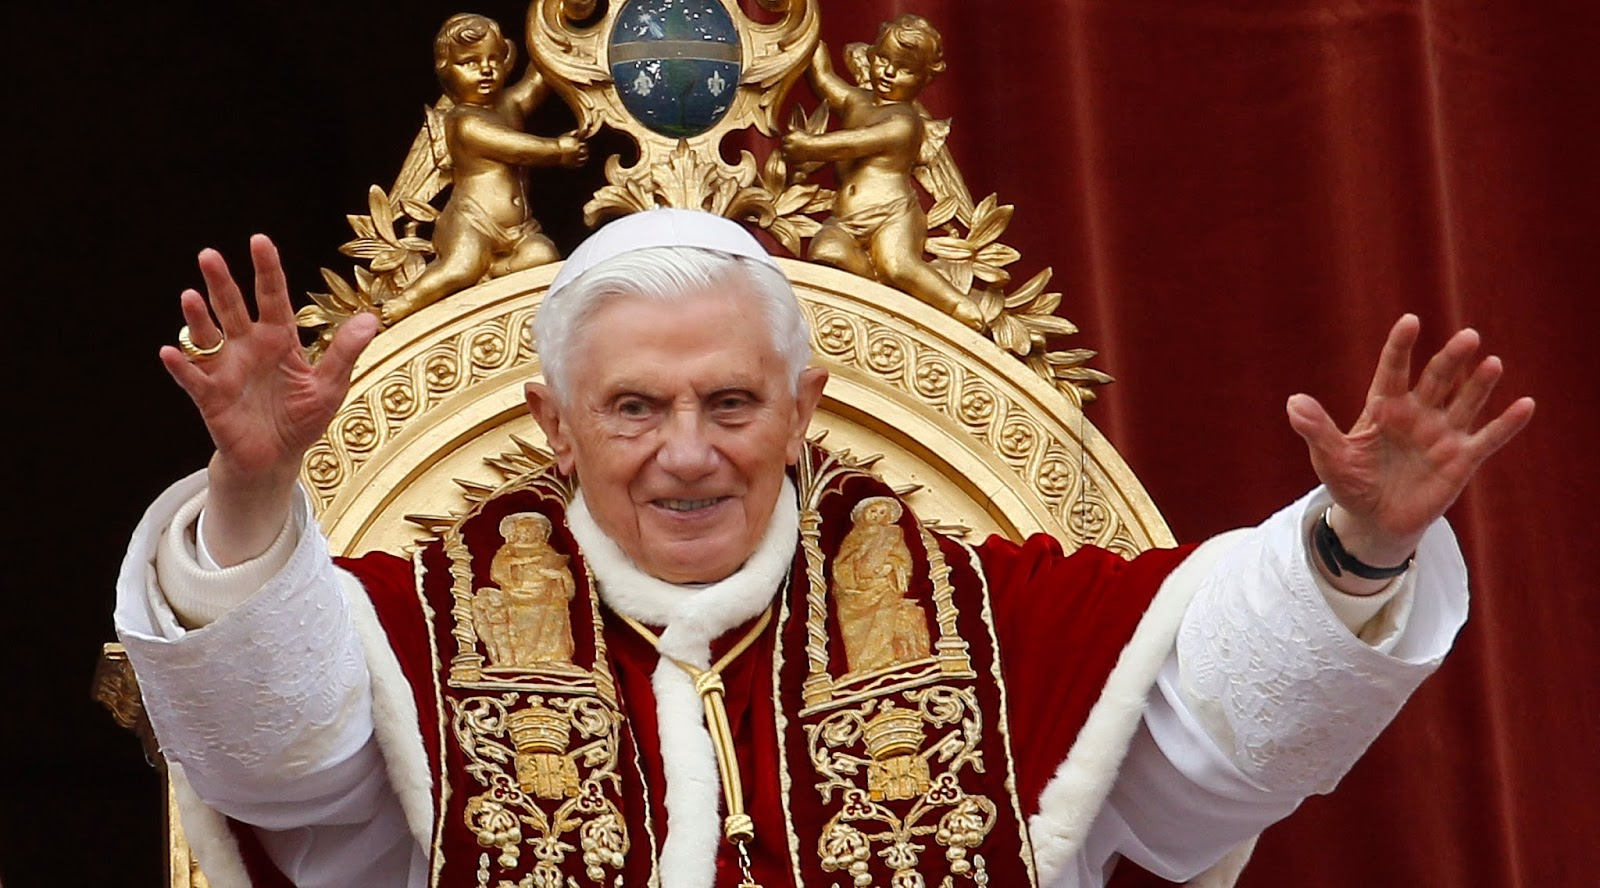 What is the original birthday congratulation for the pope to come up with